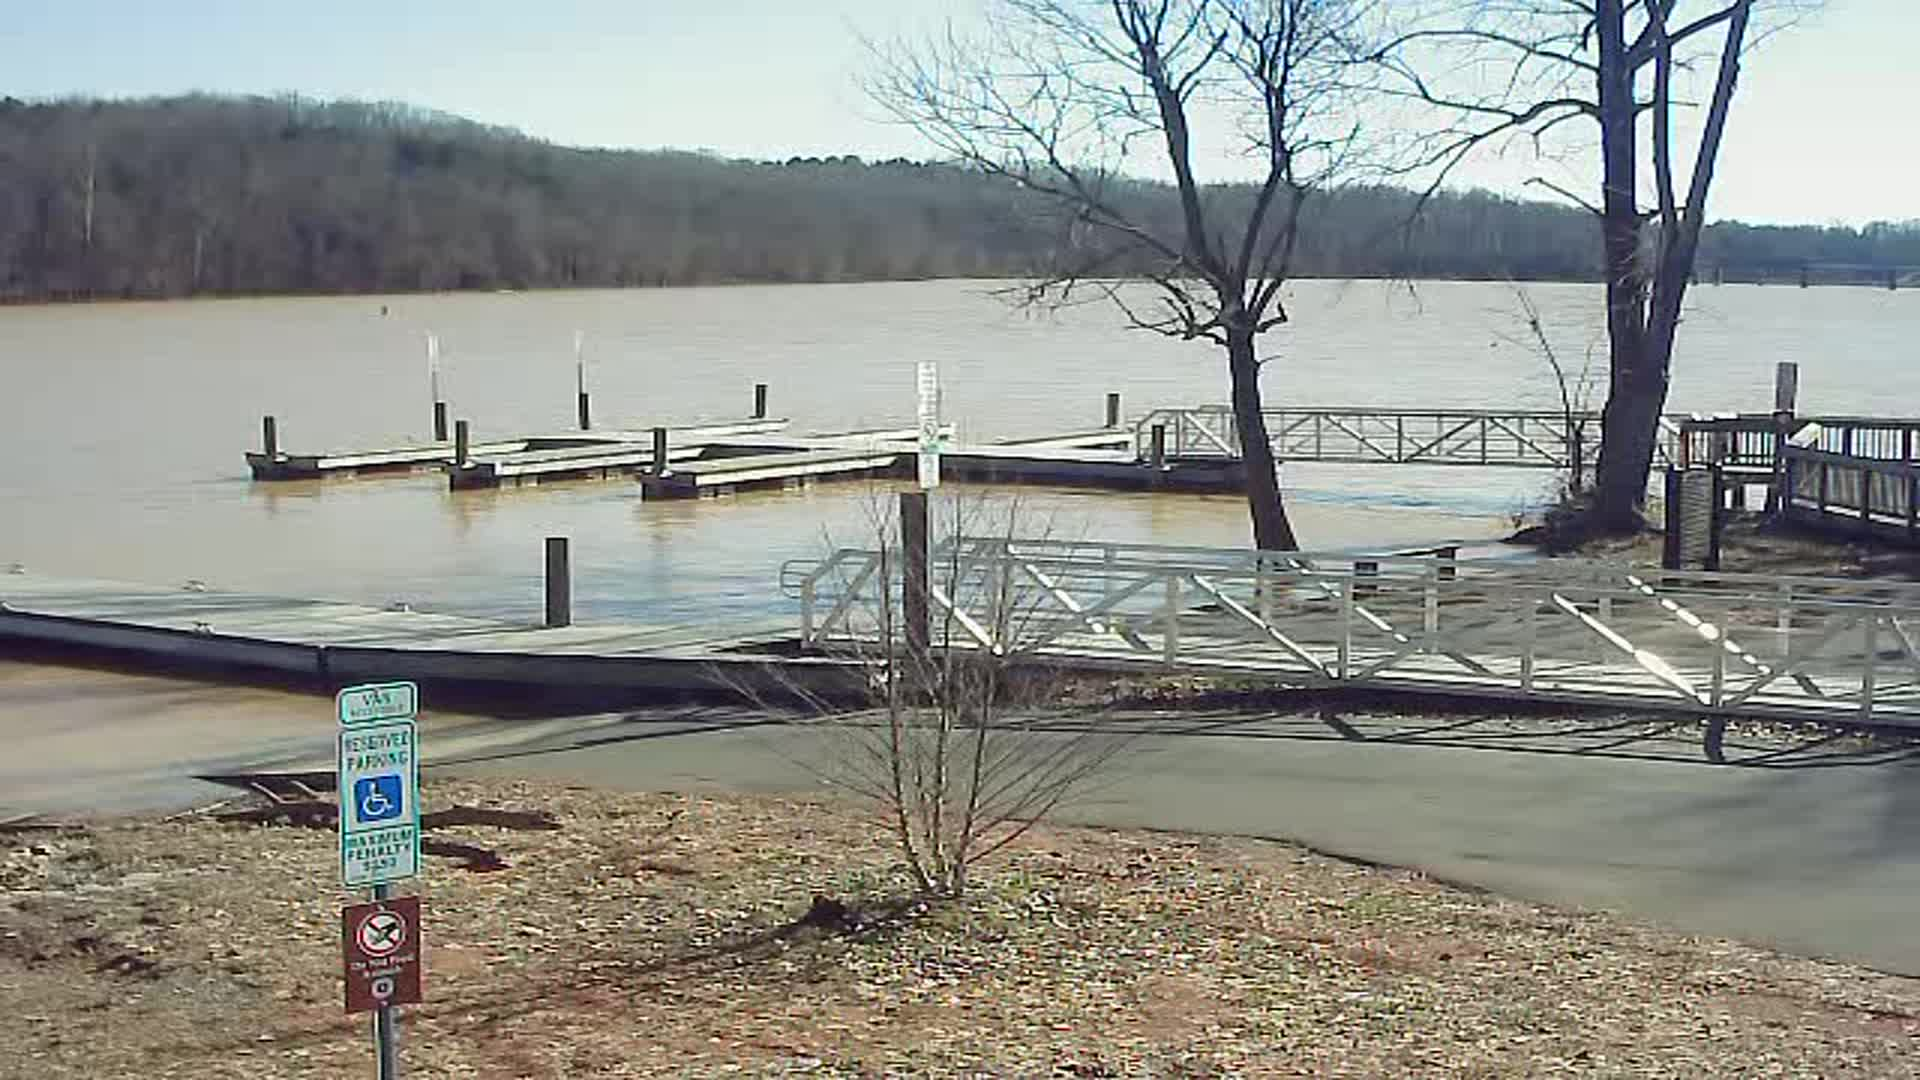 1909 - Boat Launch @ 2/16/2021 7:18:45 PM